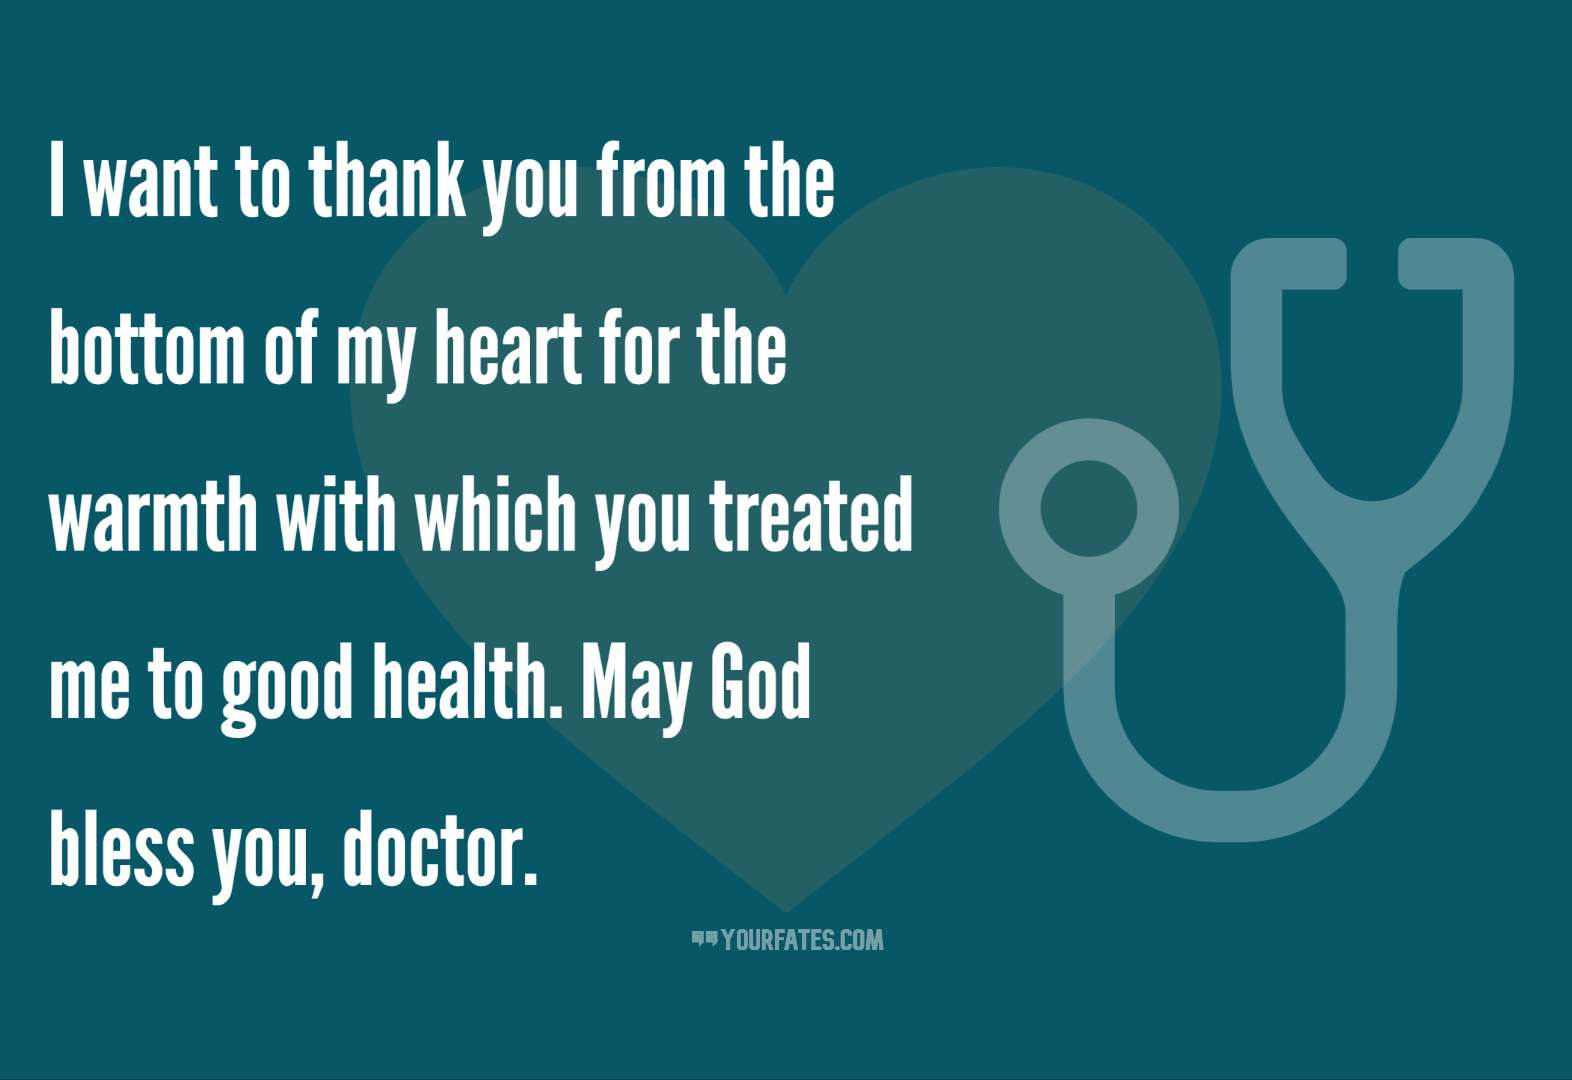 Thank you Doctor wishes